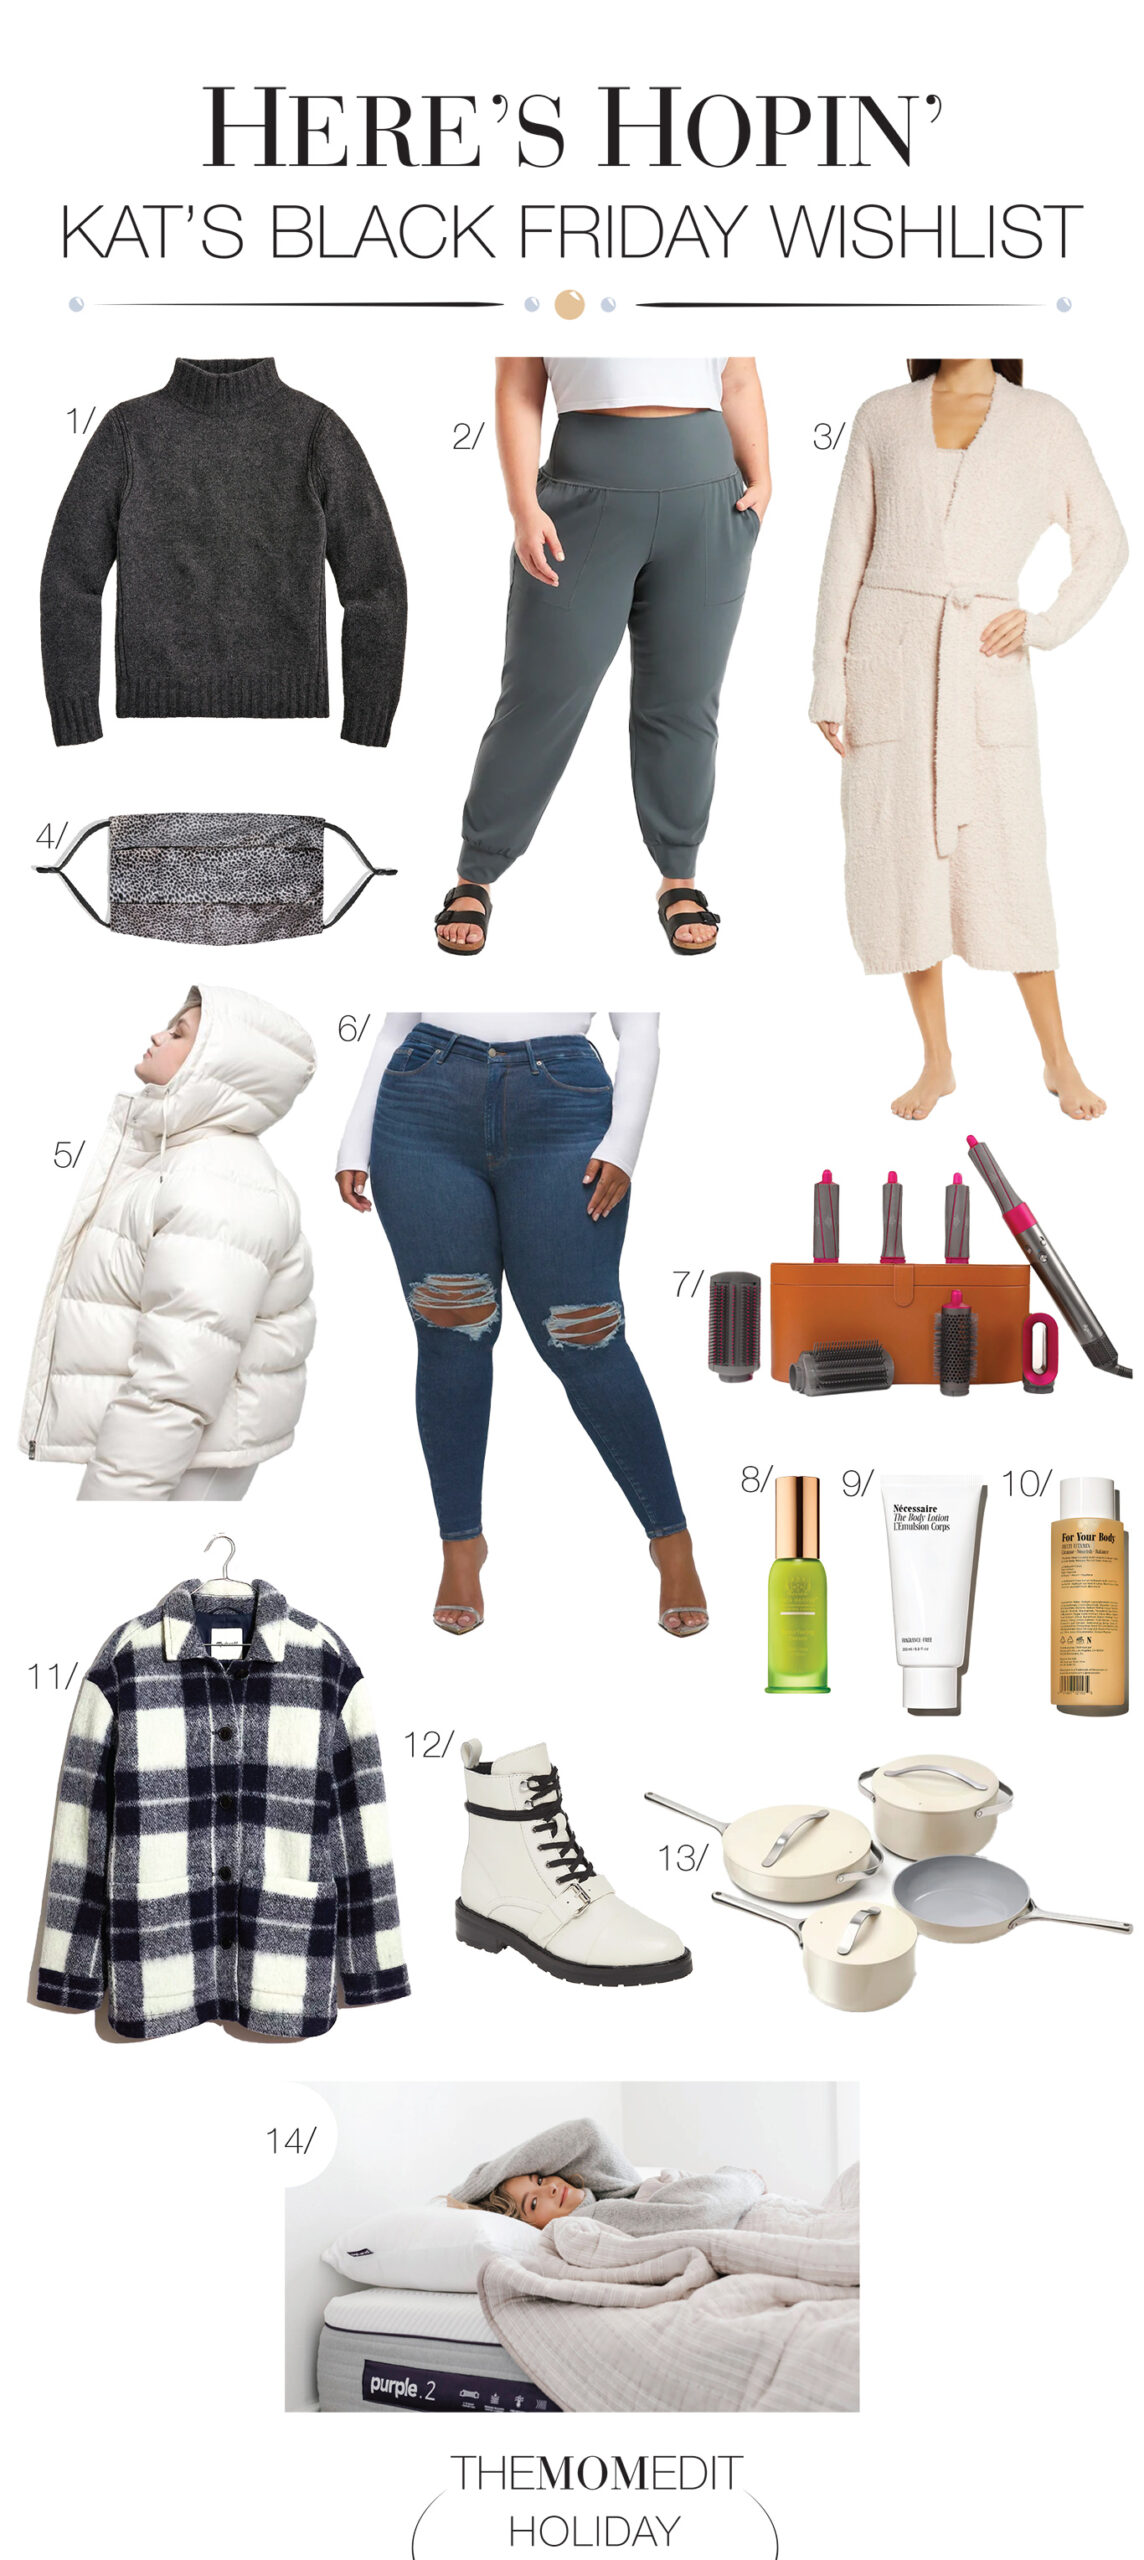 Athleta joggers, the Slip silk face mask, Dyson Airwrap, a Madewell shacket & really good clean beauty...the Black Friday deals we hope to shop online!